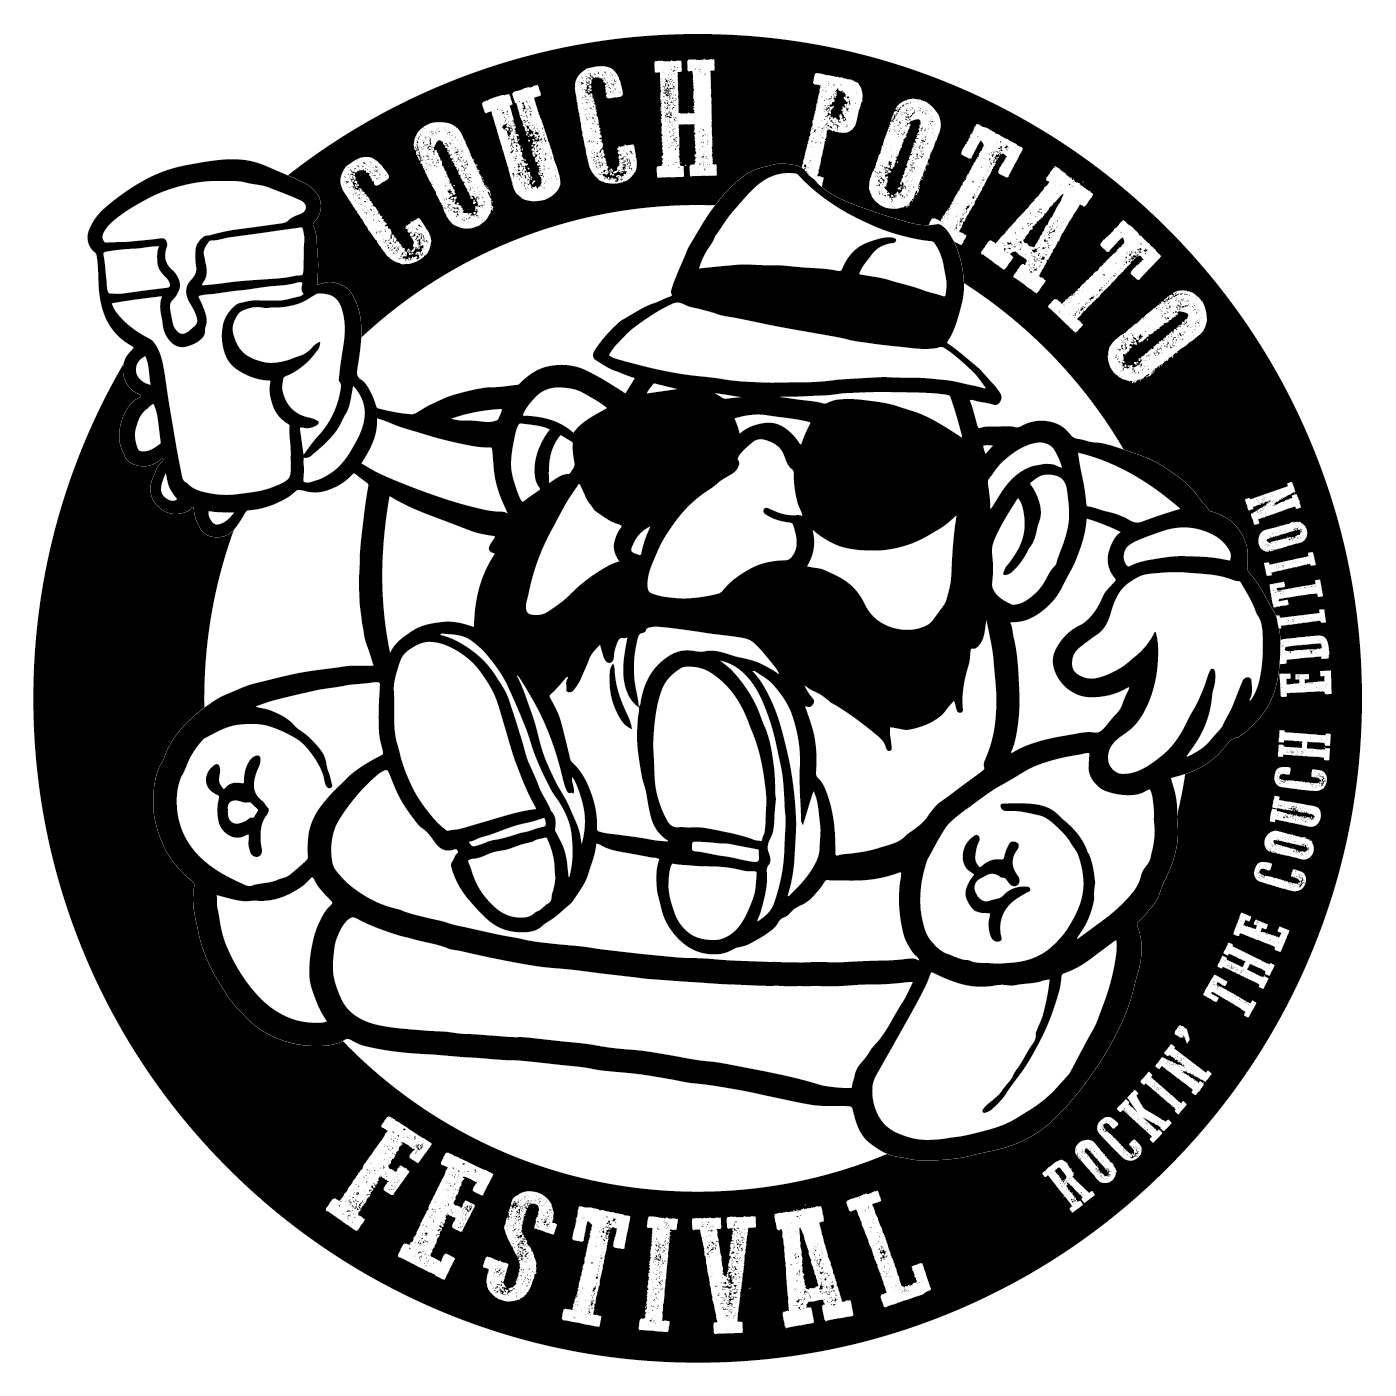 Couch Potato Festival Ticket Shop